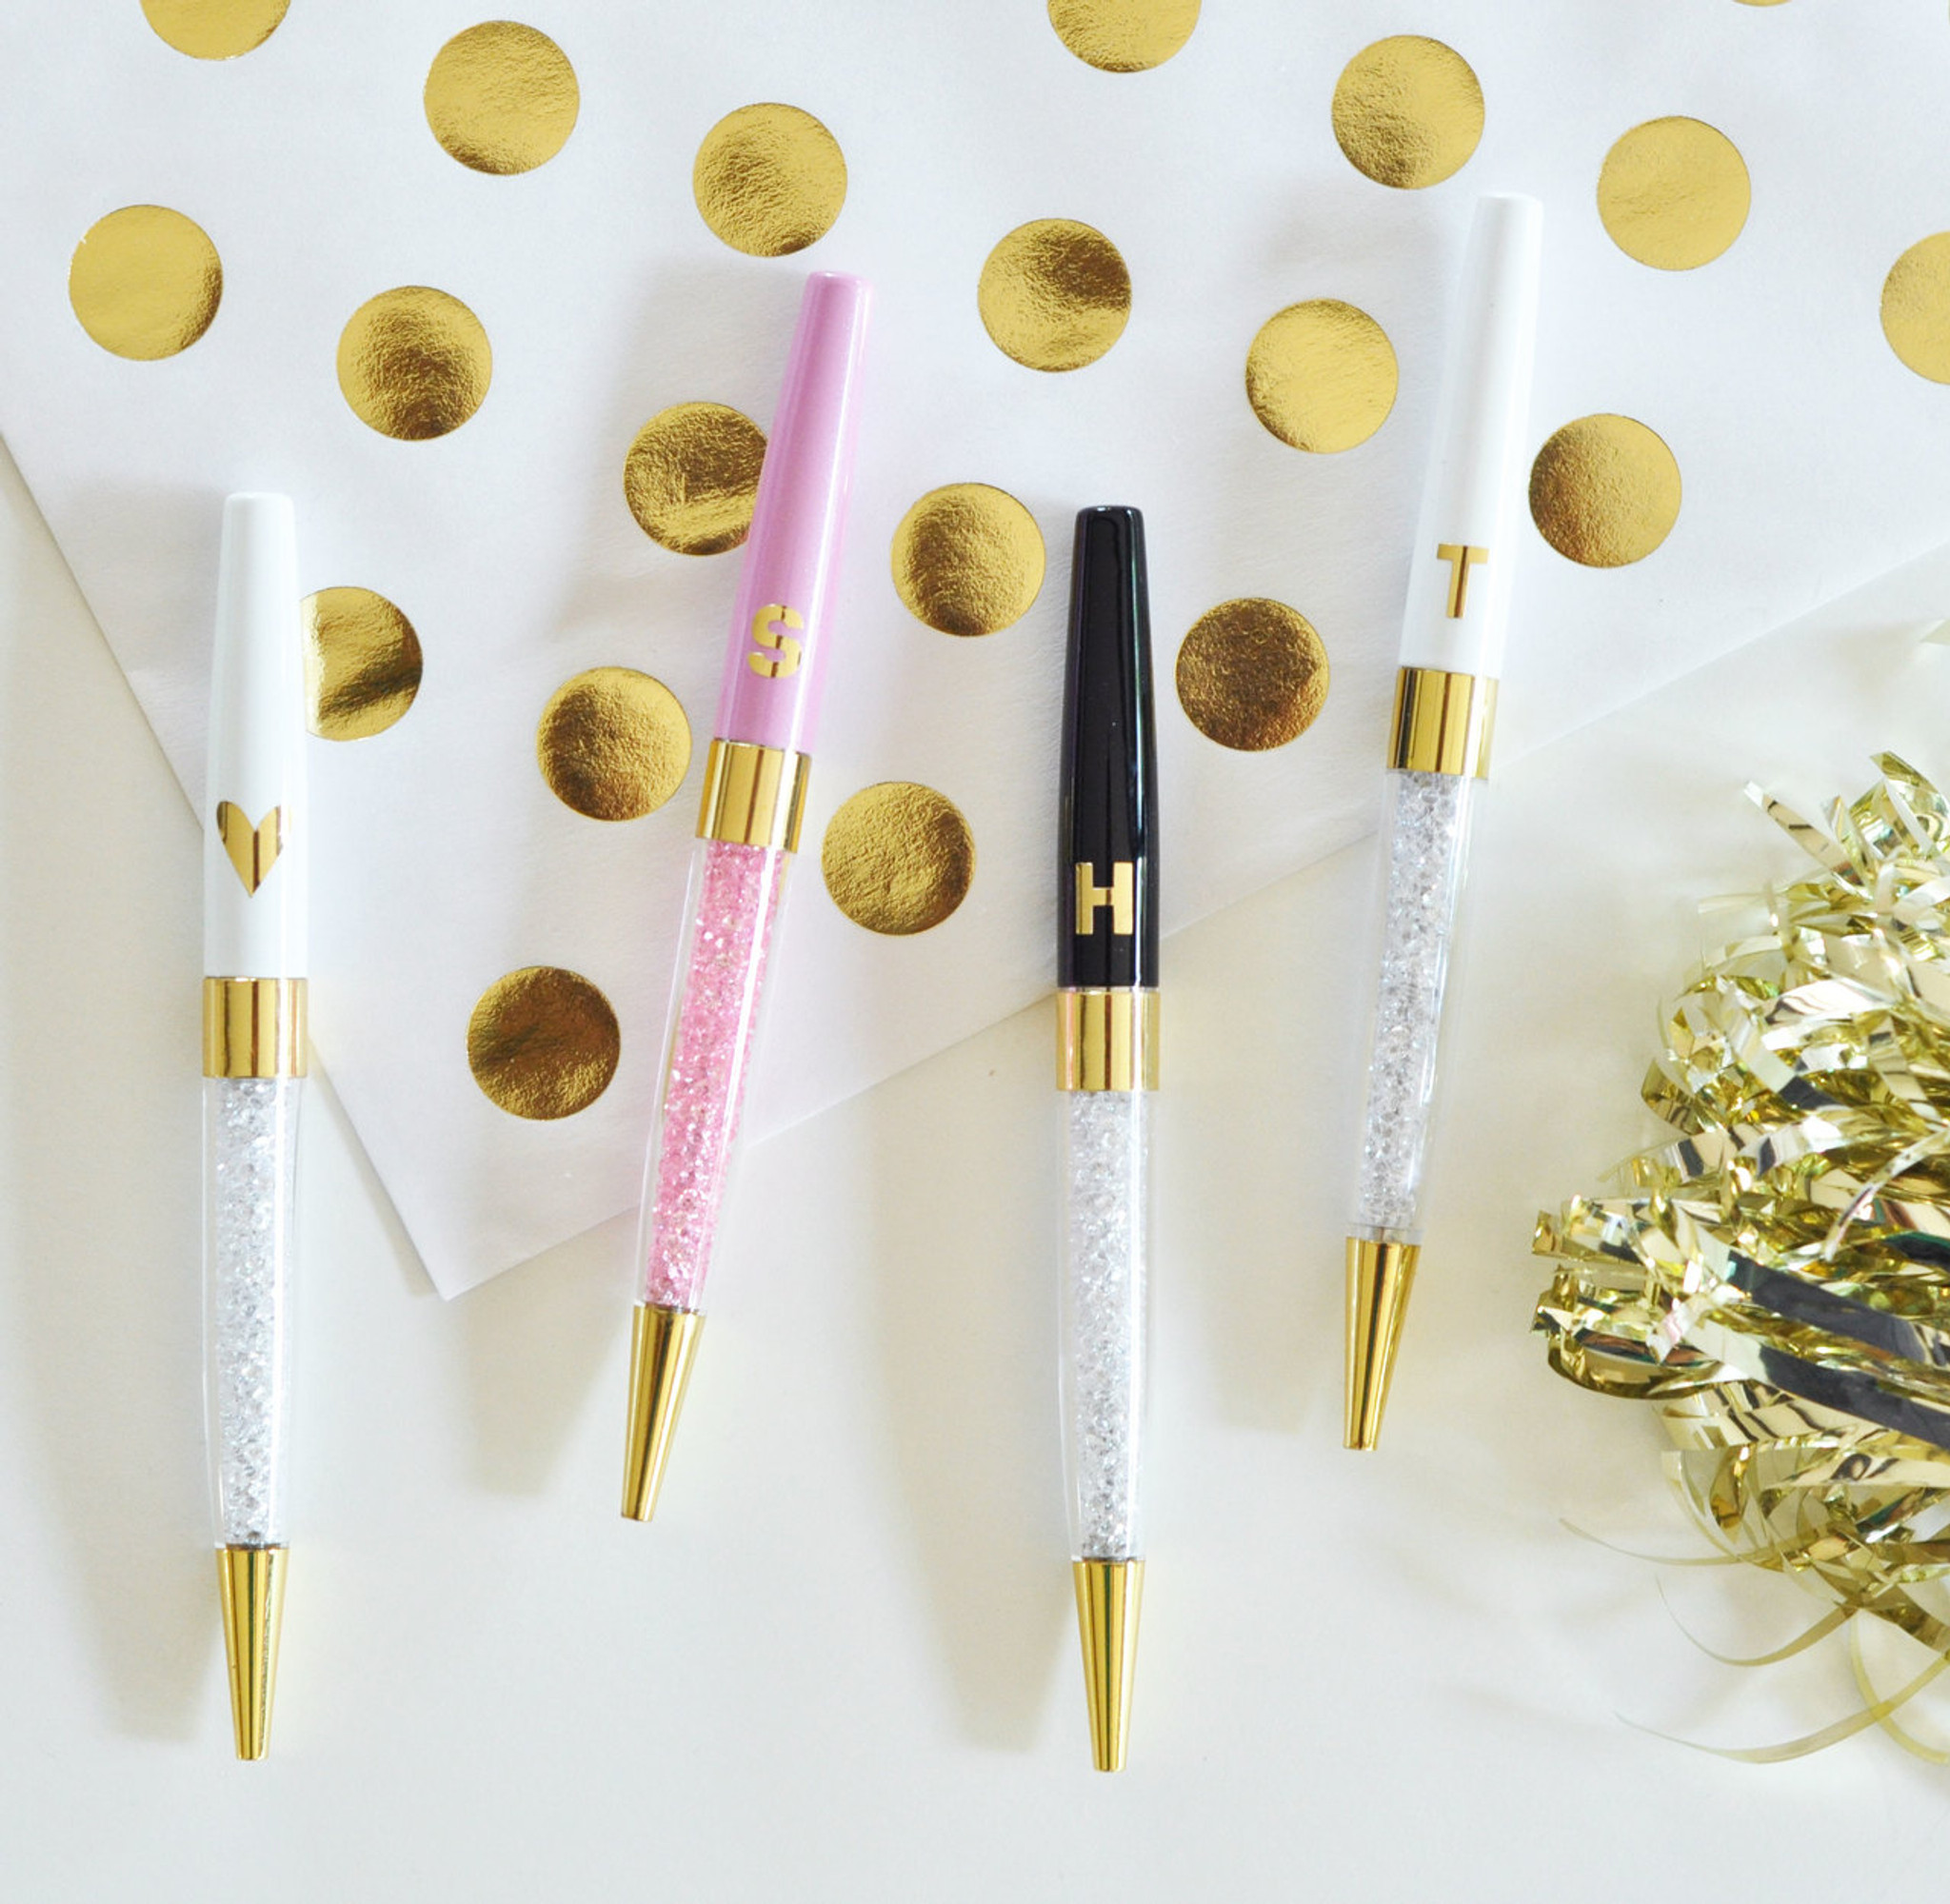 Monogram Pens - Crystal Pens - Glossy Pen Gifts - Maid Of Honor Gifts 3ct - momentosevents